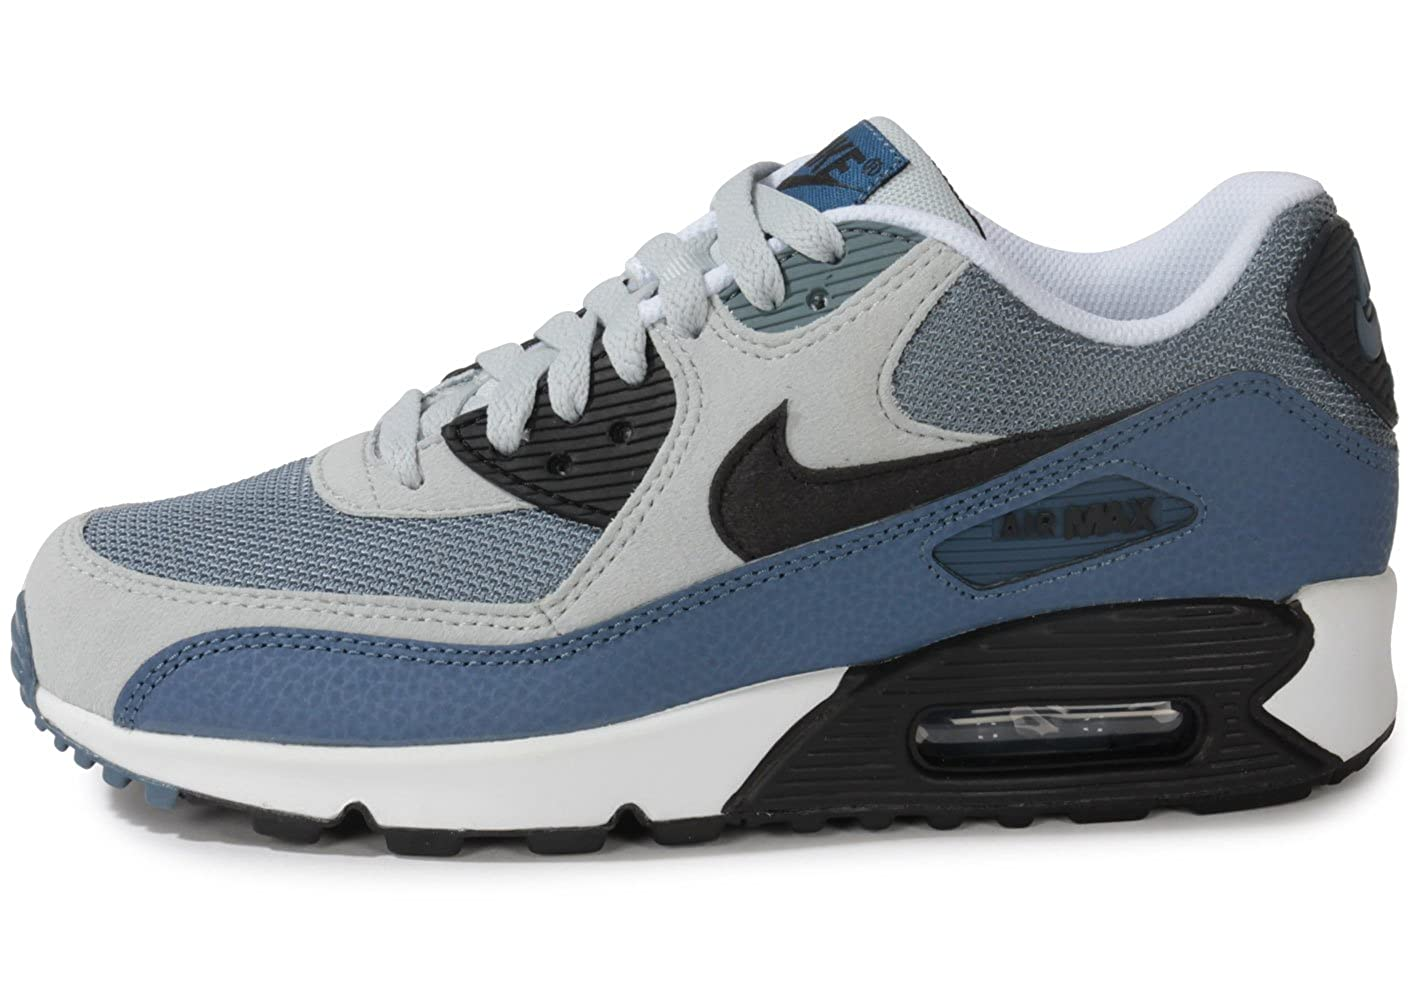 promo code 8f5c2 bed61 NIKE Junior Air Max 90 Grey Black Grey Grey Size  4.5  Amazon.co.uk  Shoes    Bags